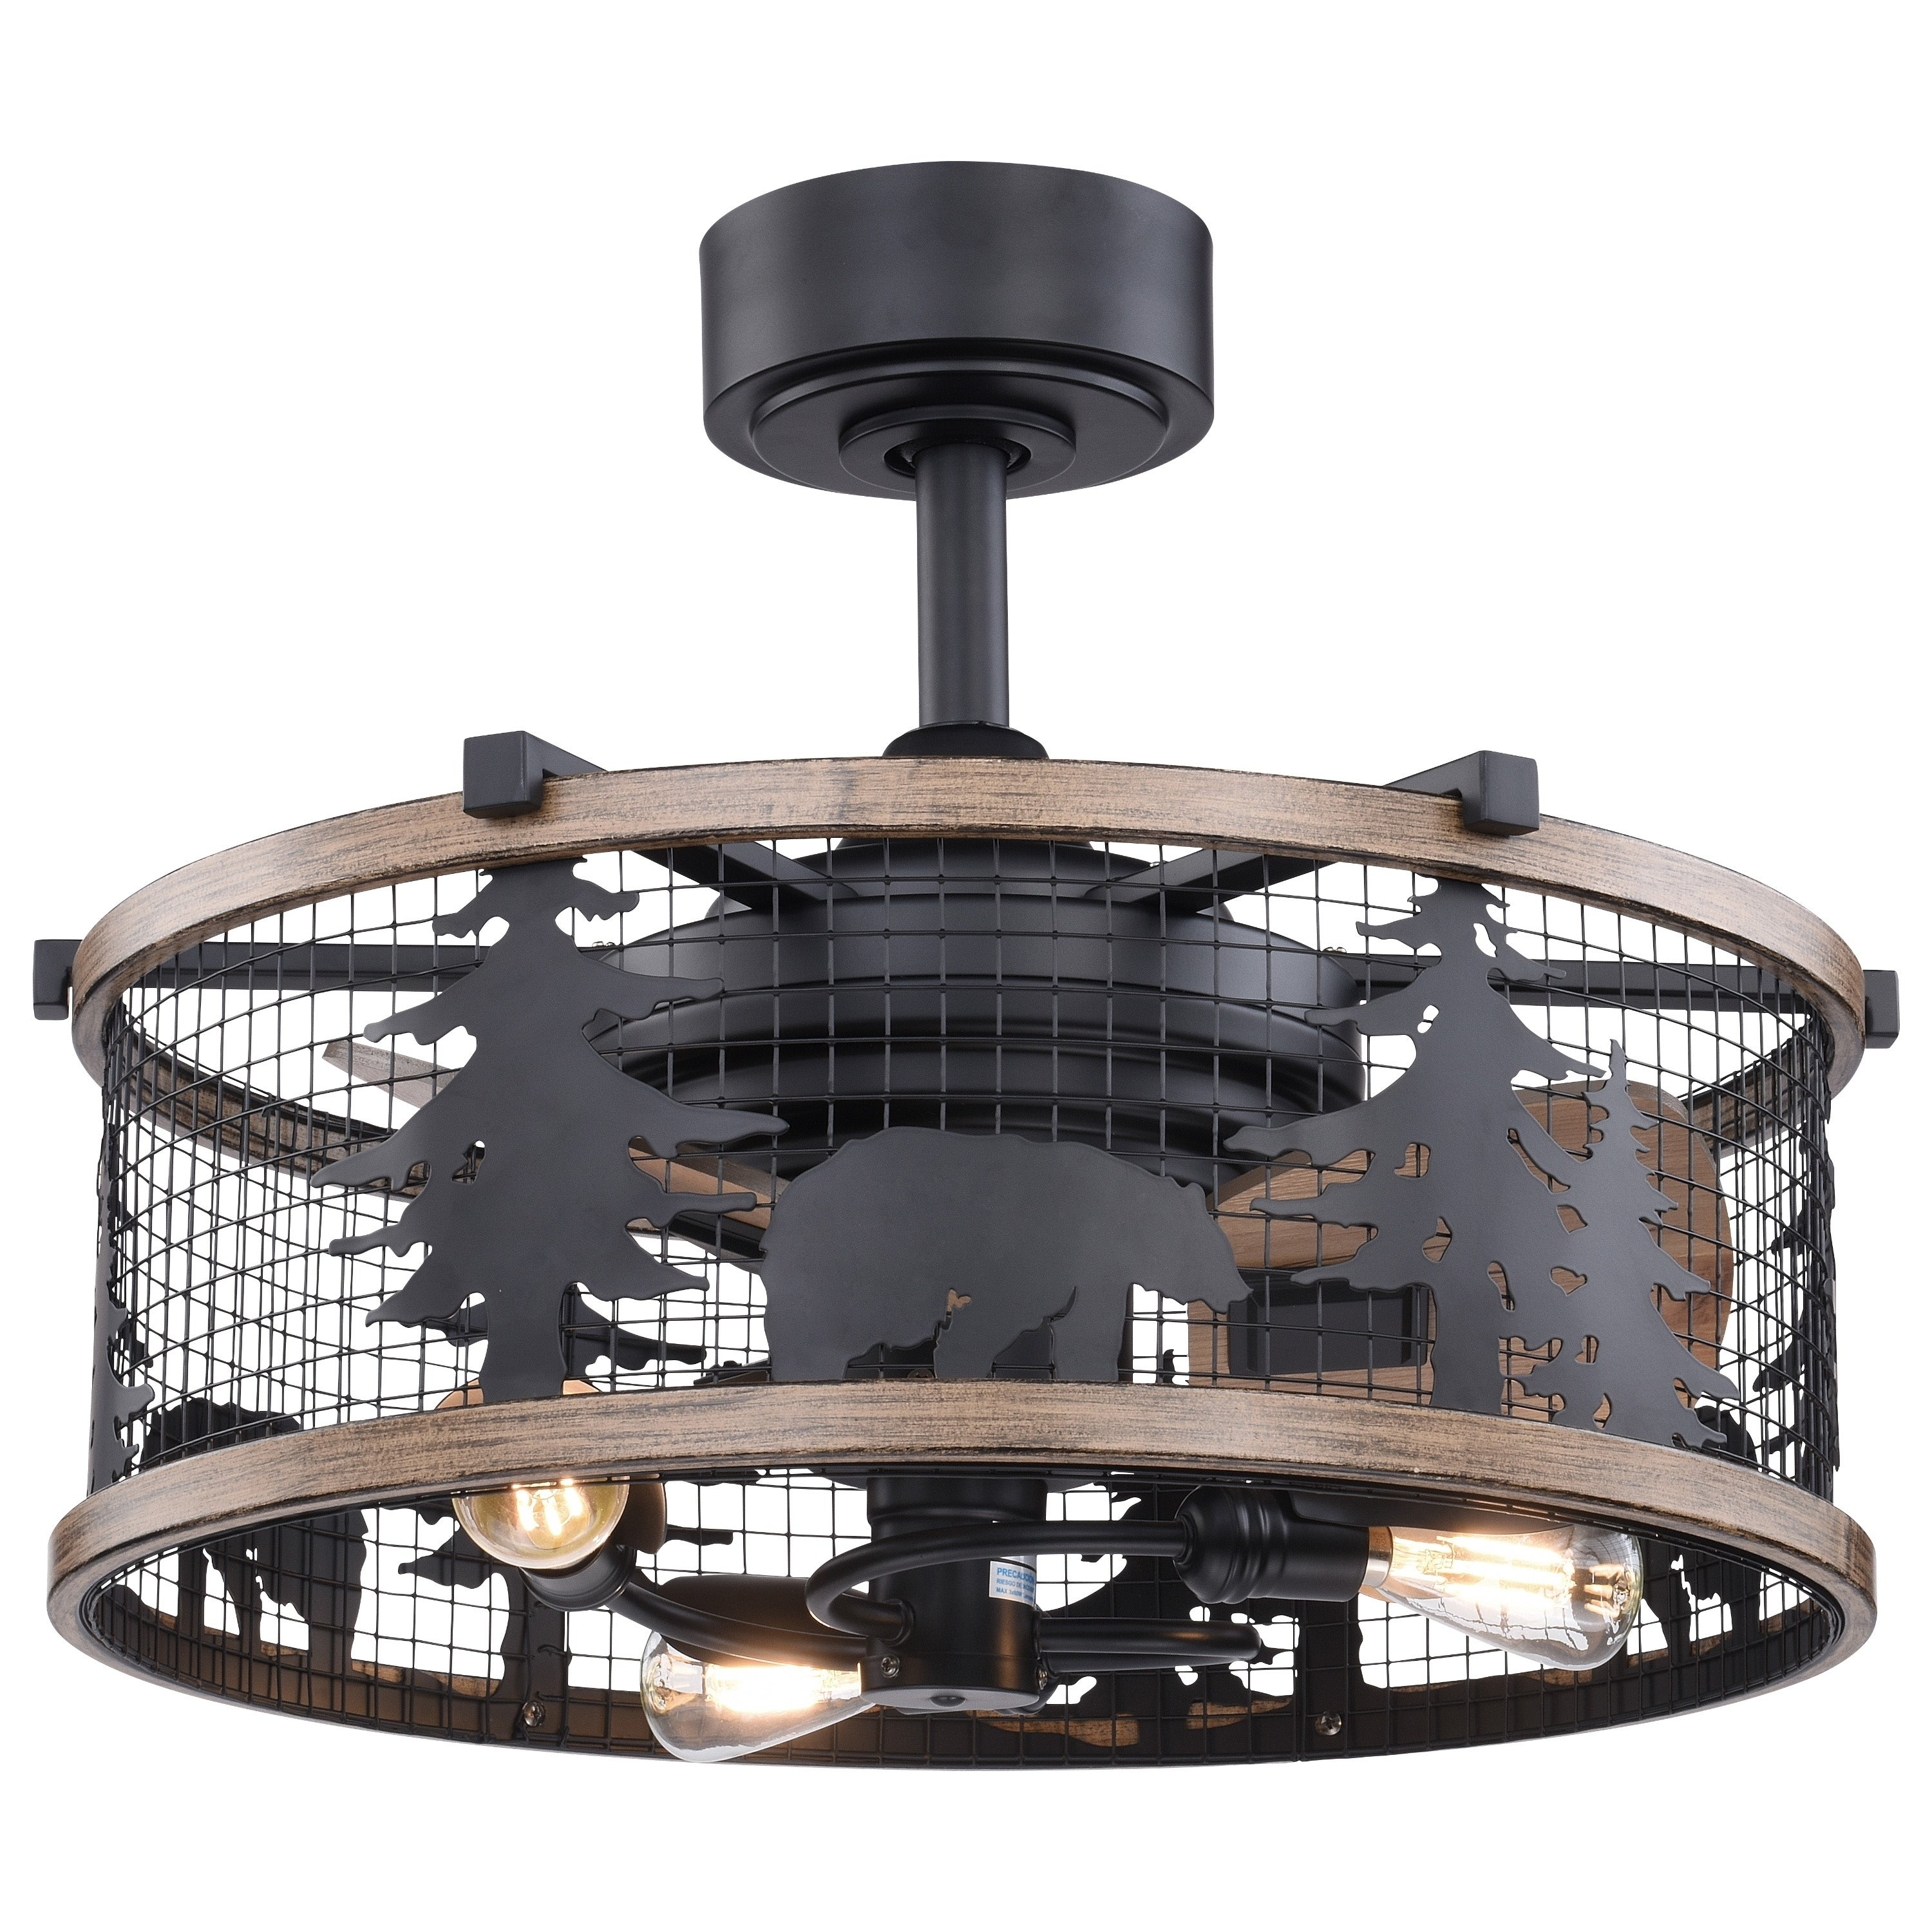 Shop Black Friday Deals On Kodiak Bear Bronze And Teak Rustic Ceiling Fan With Remote 21 In W X 18 In H X 21 In D Overstock 31059451